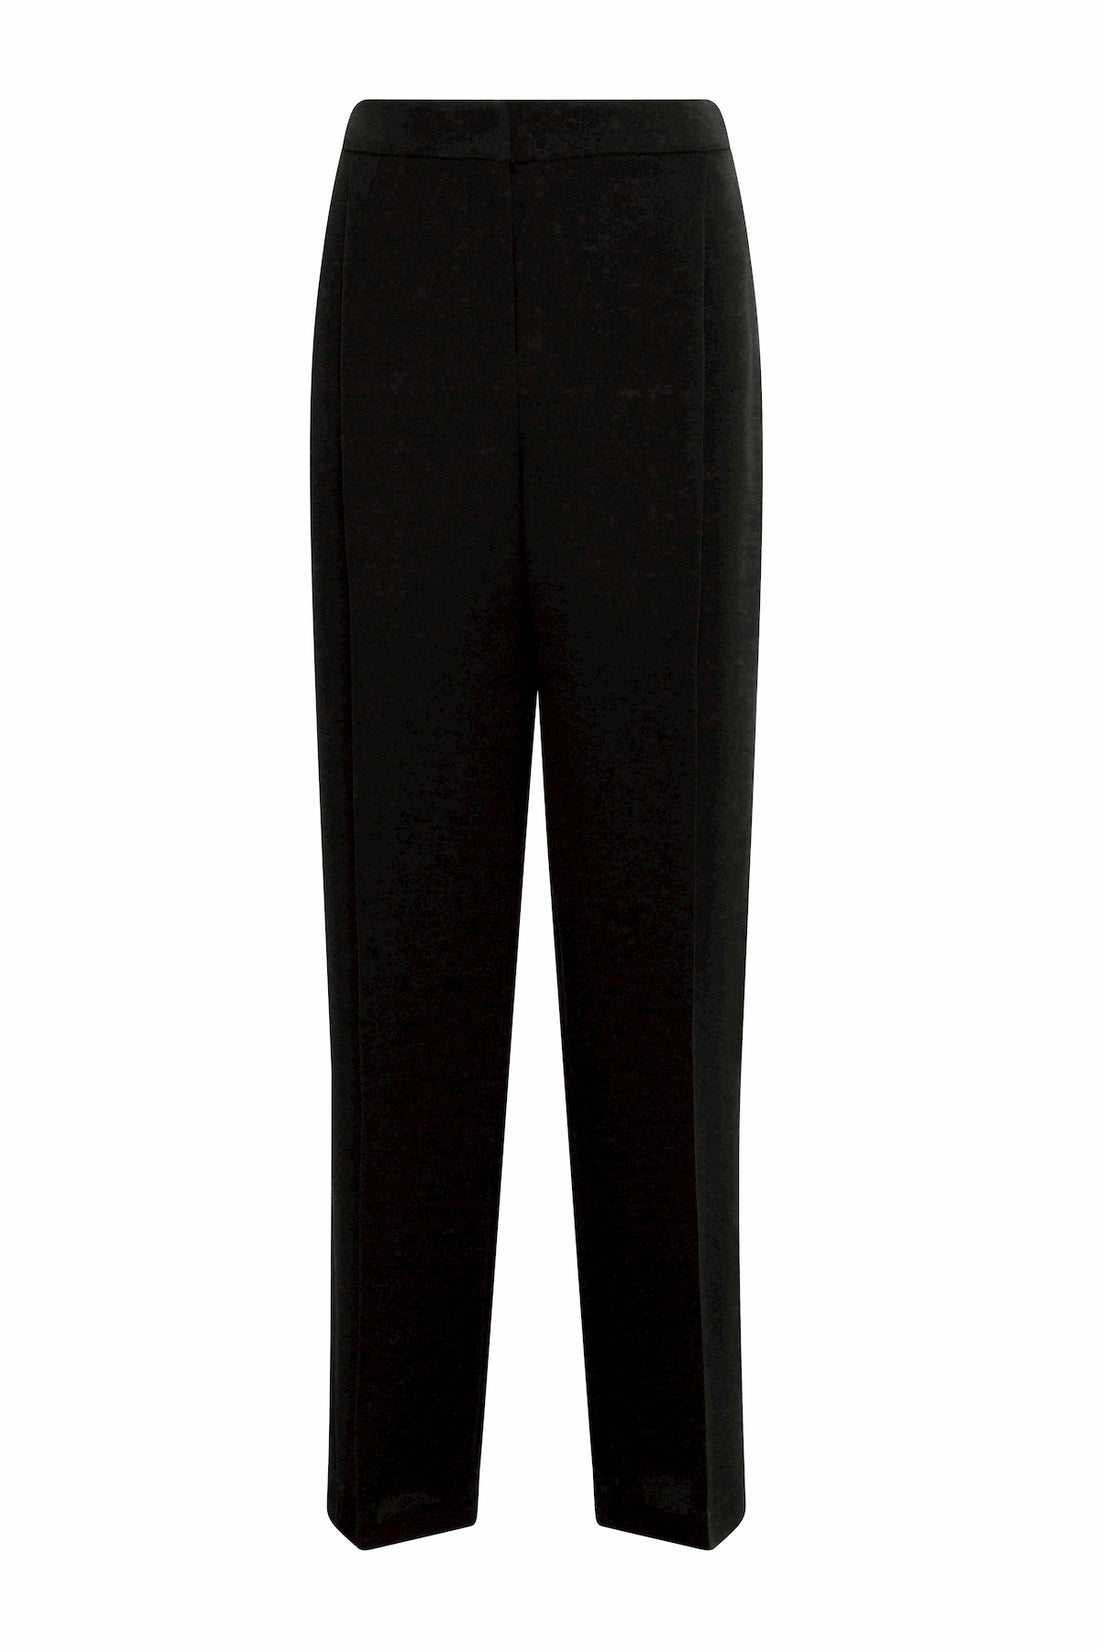 BLACK RELAXED PANT